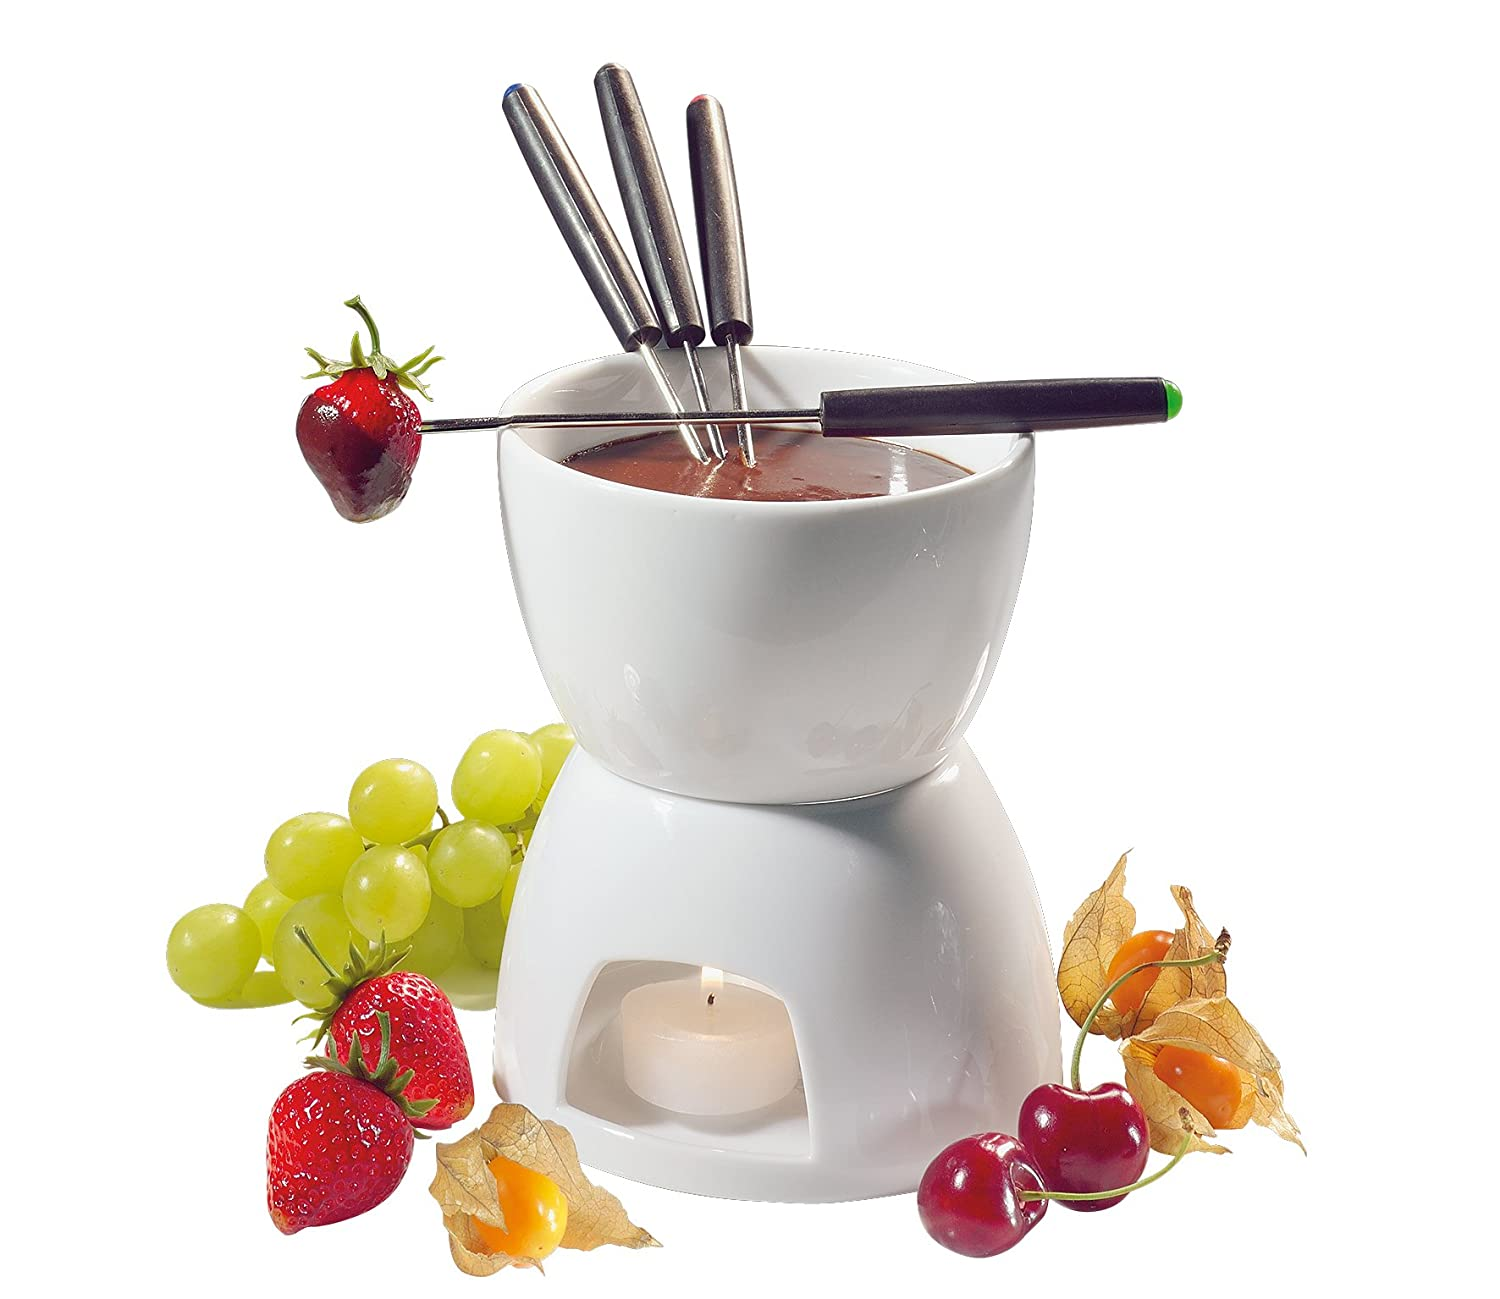 Amazon.com: Cilio Porcelain Chocolate Fondue Set, White: Fondue ...